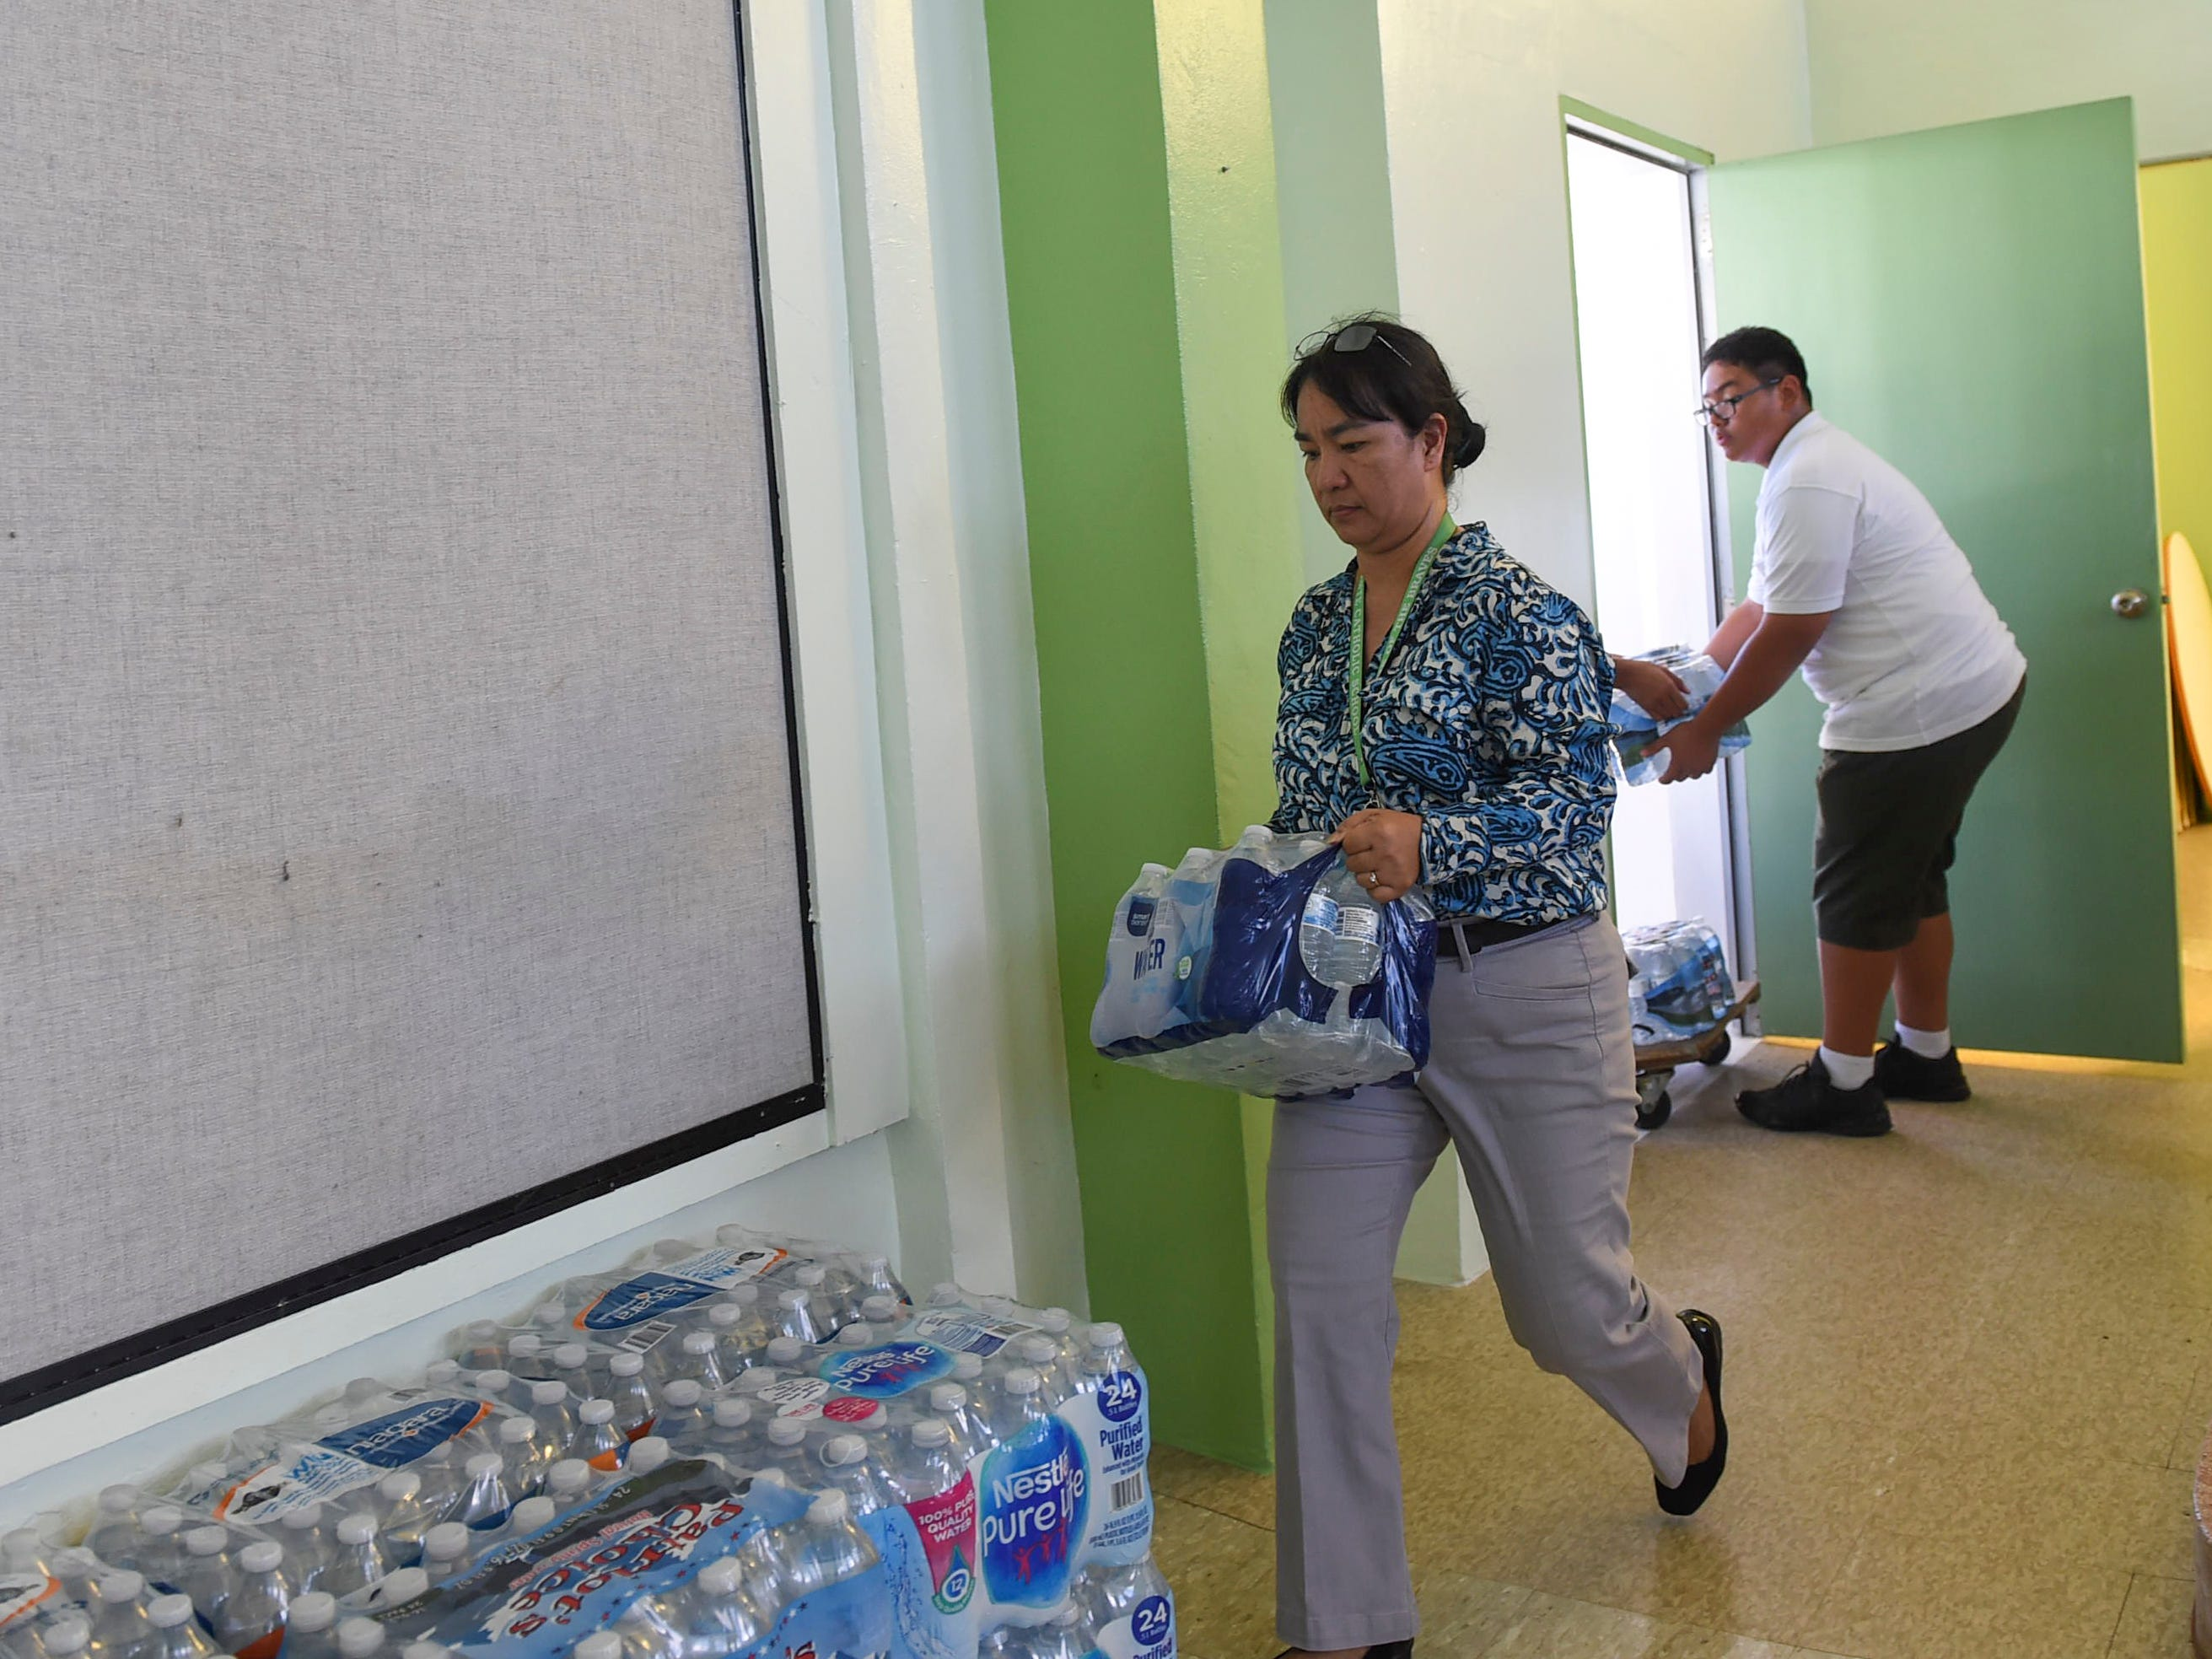 San Vicente Catholic School Principal Nelba R. Aquino carries a case of bottled water in the staging and distribution area for a Super Typhoon Yutu relief effort at her school's campus, Oct. 29, 2018.